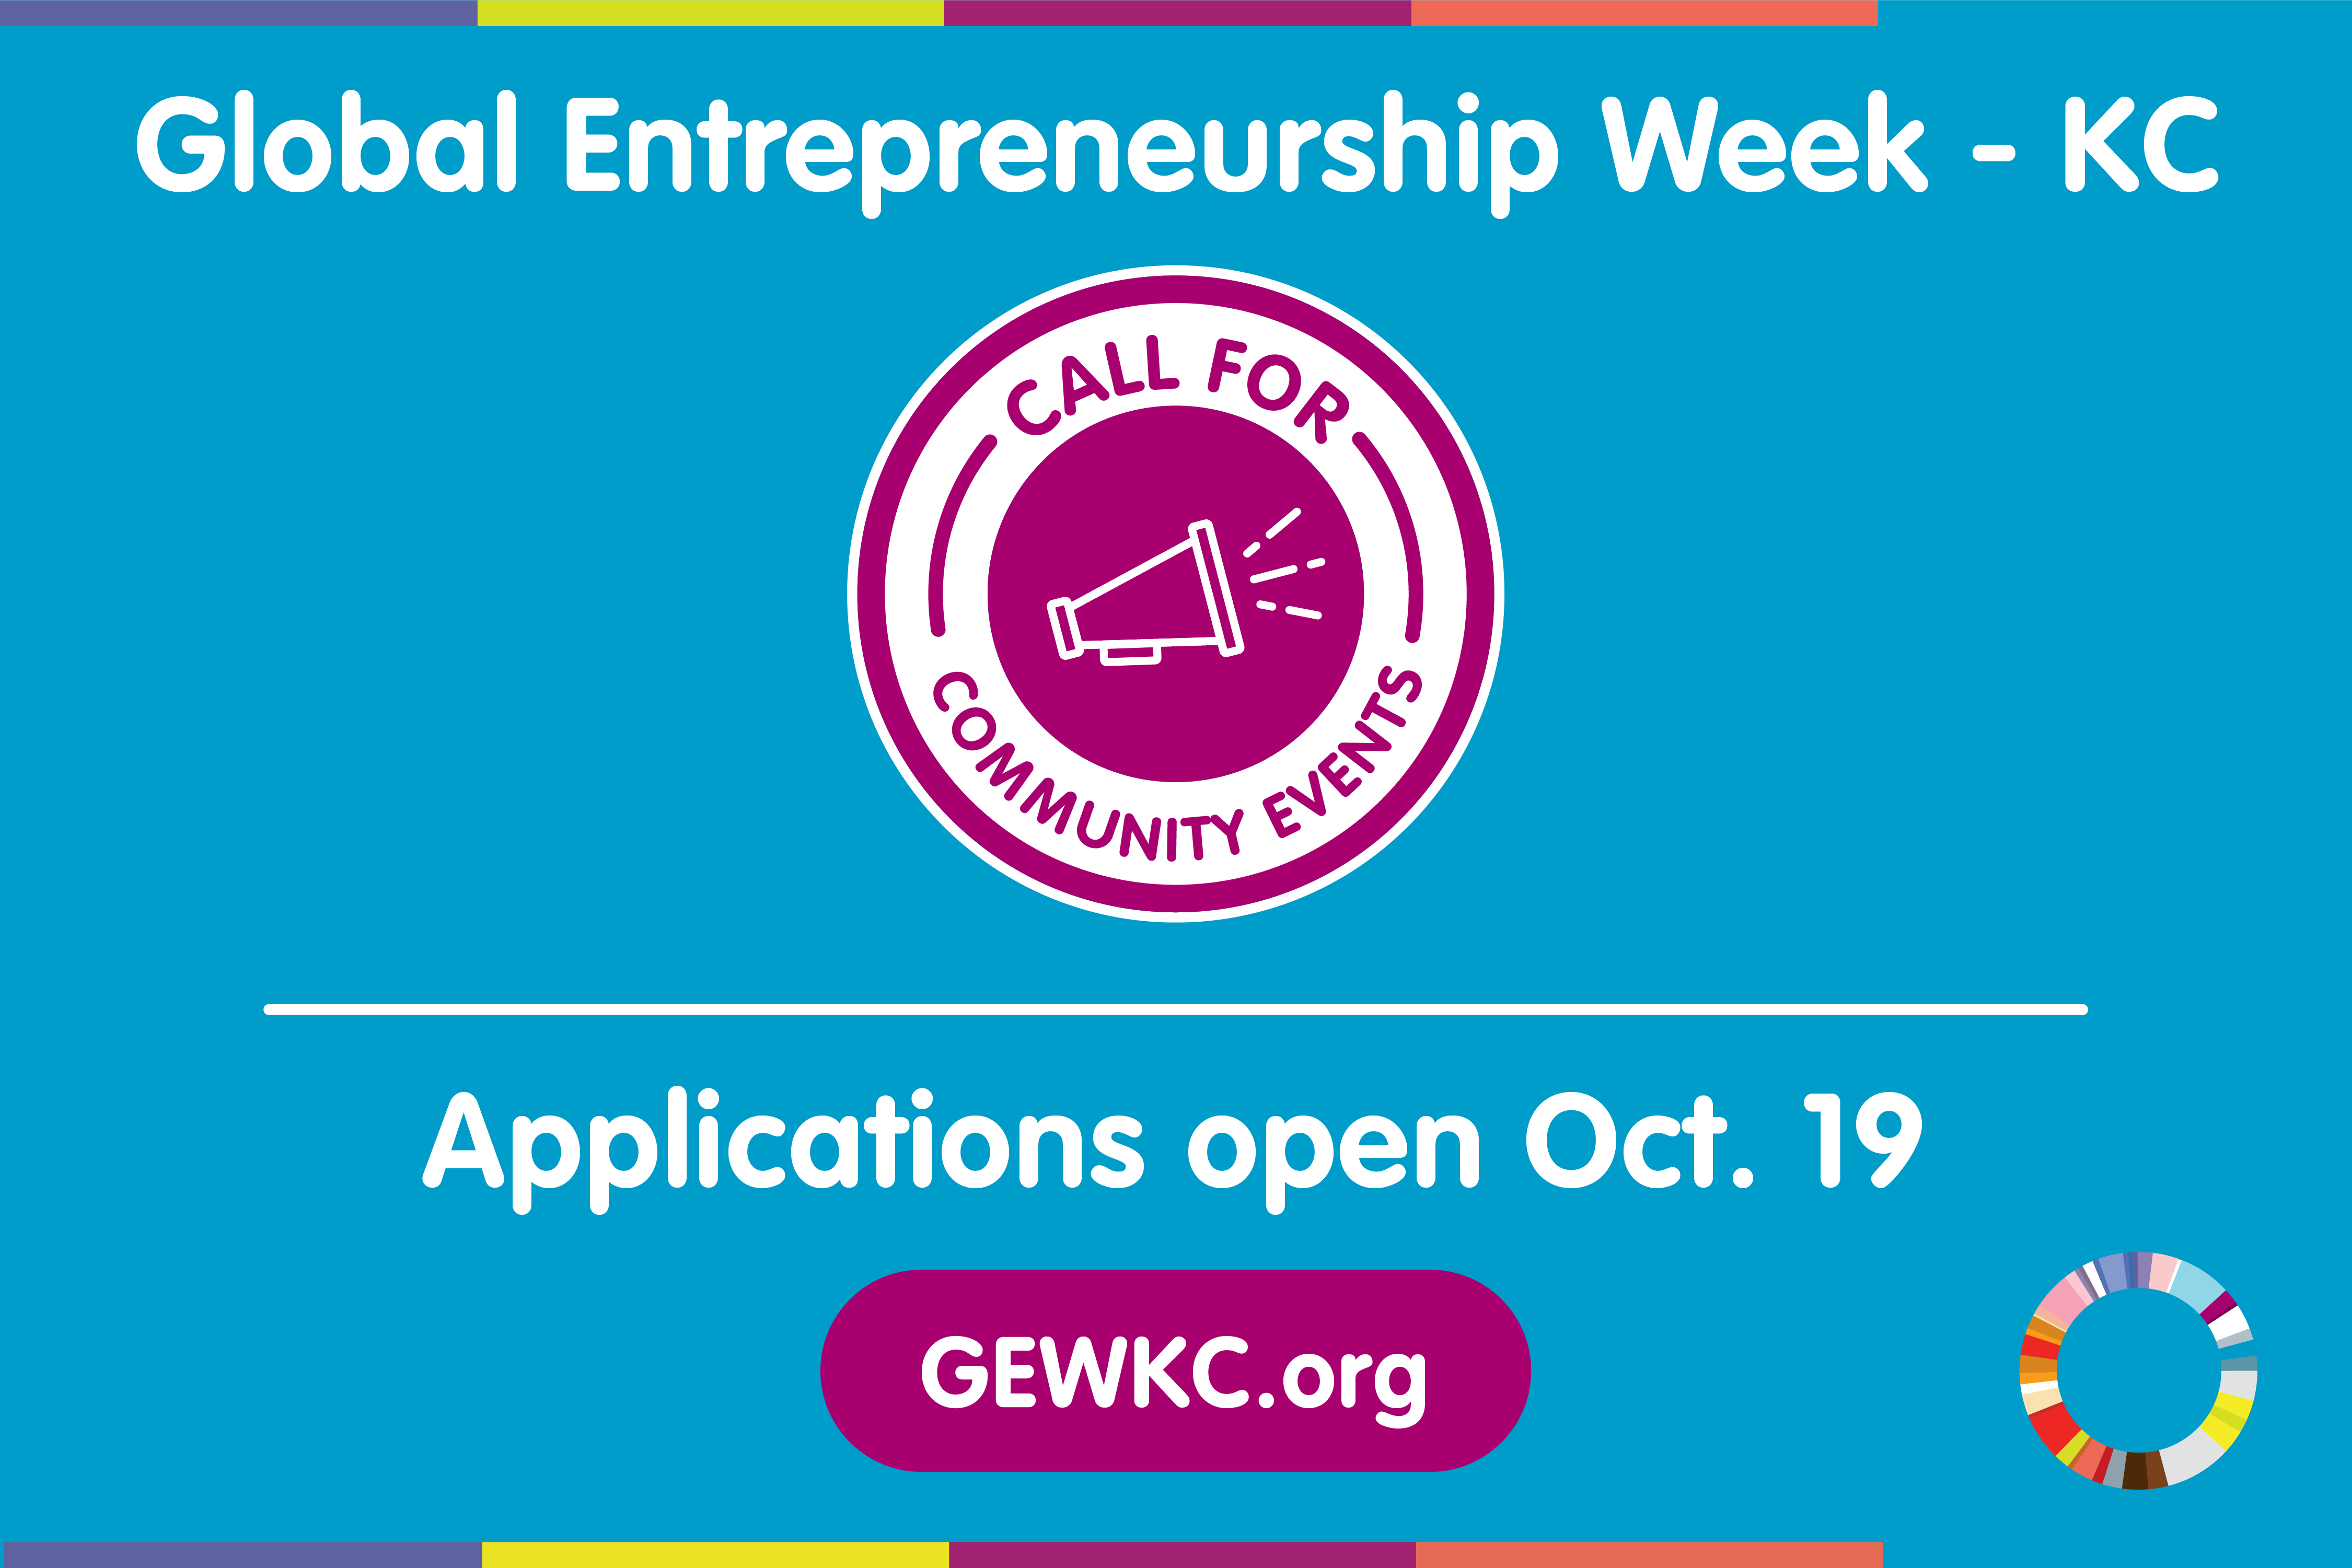 GEWKC Submit Community Event